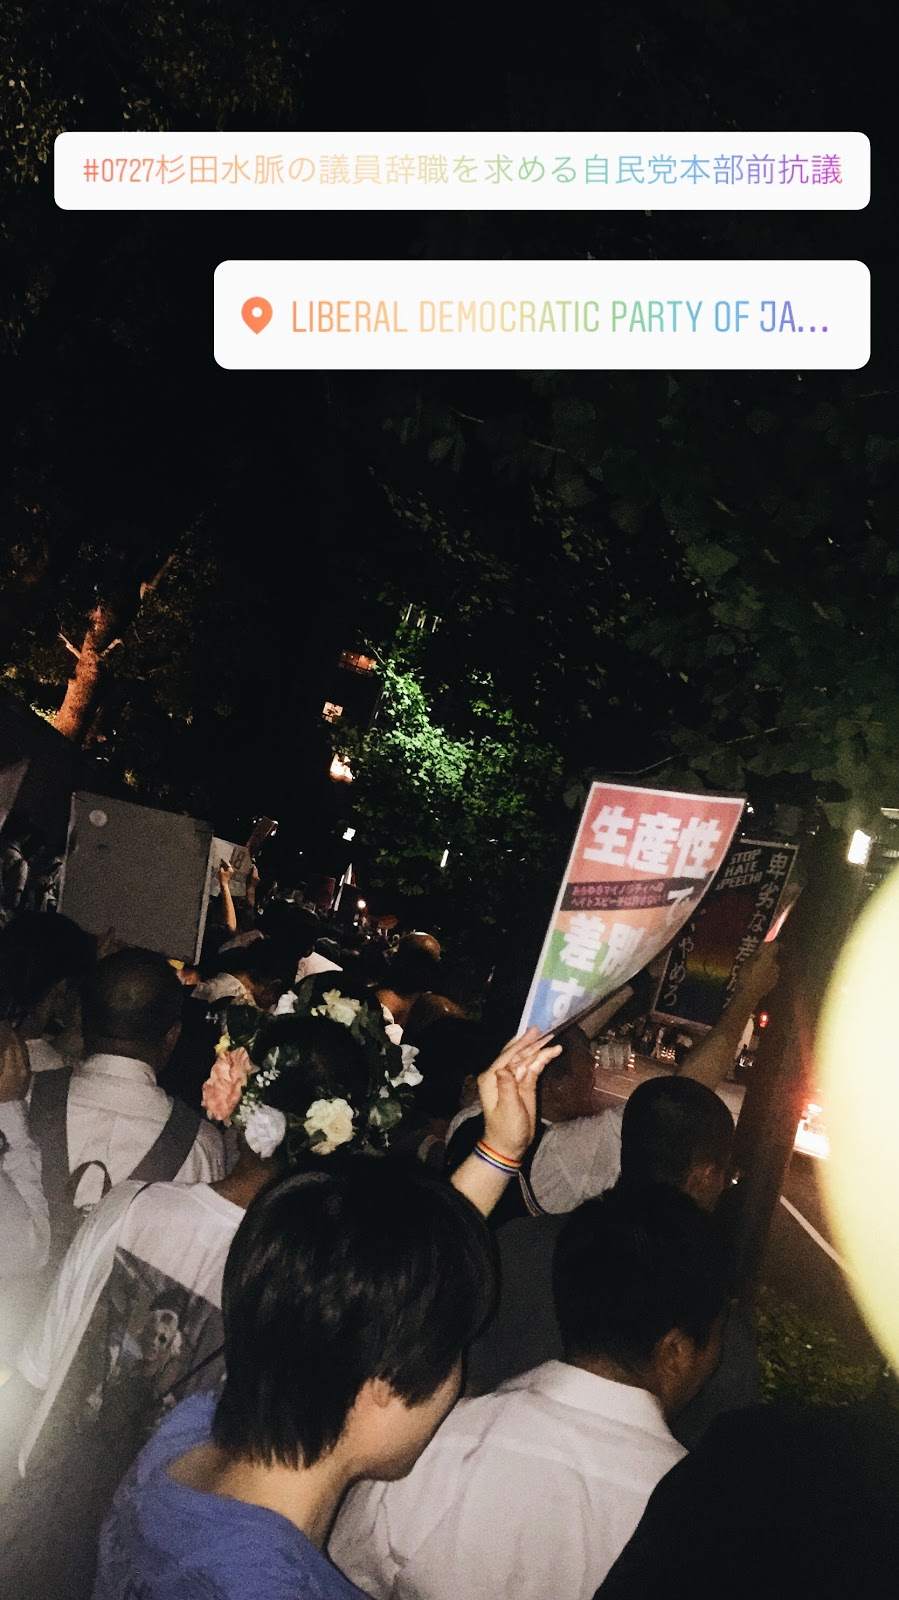 Even In Japan, Bashing Gays Is Not Okay. Behind The Scenes Of The First Sugita Protest